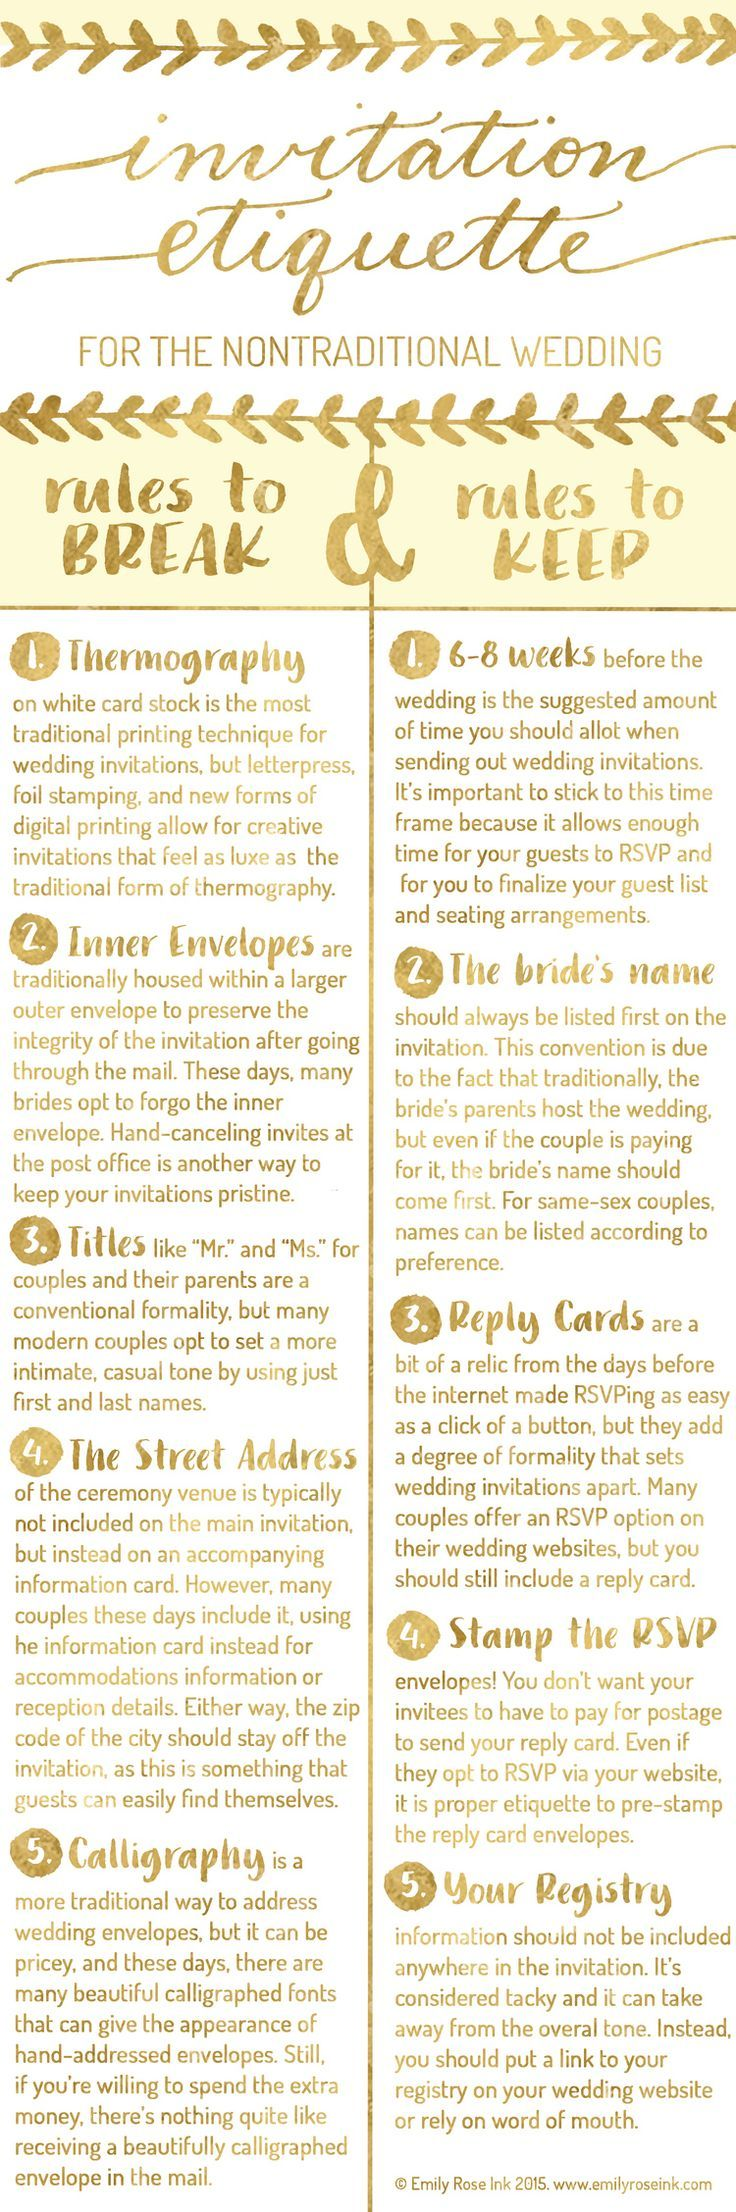 Wedding Invite Etiquette Wording: Best 25+ Nontraditional Wedding Dresses Ideas On Pinterest